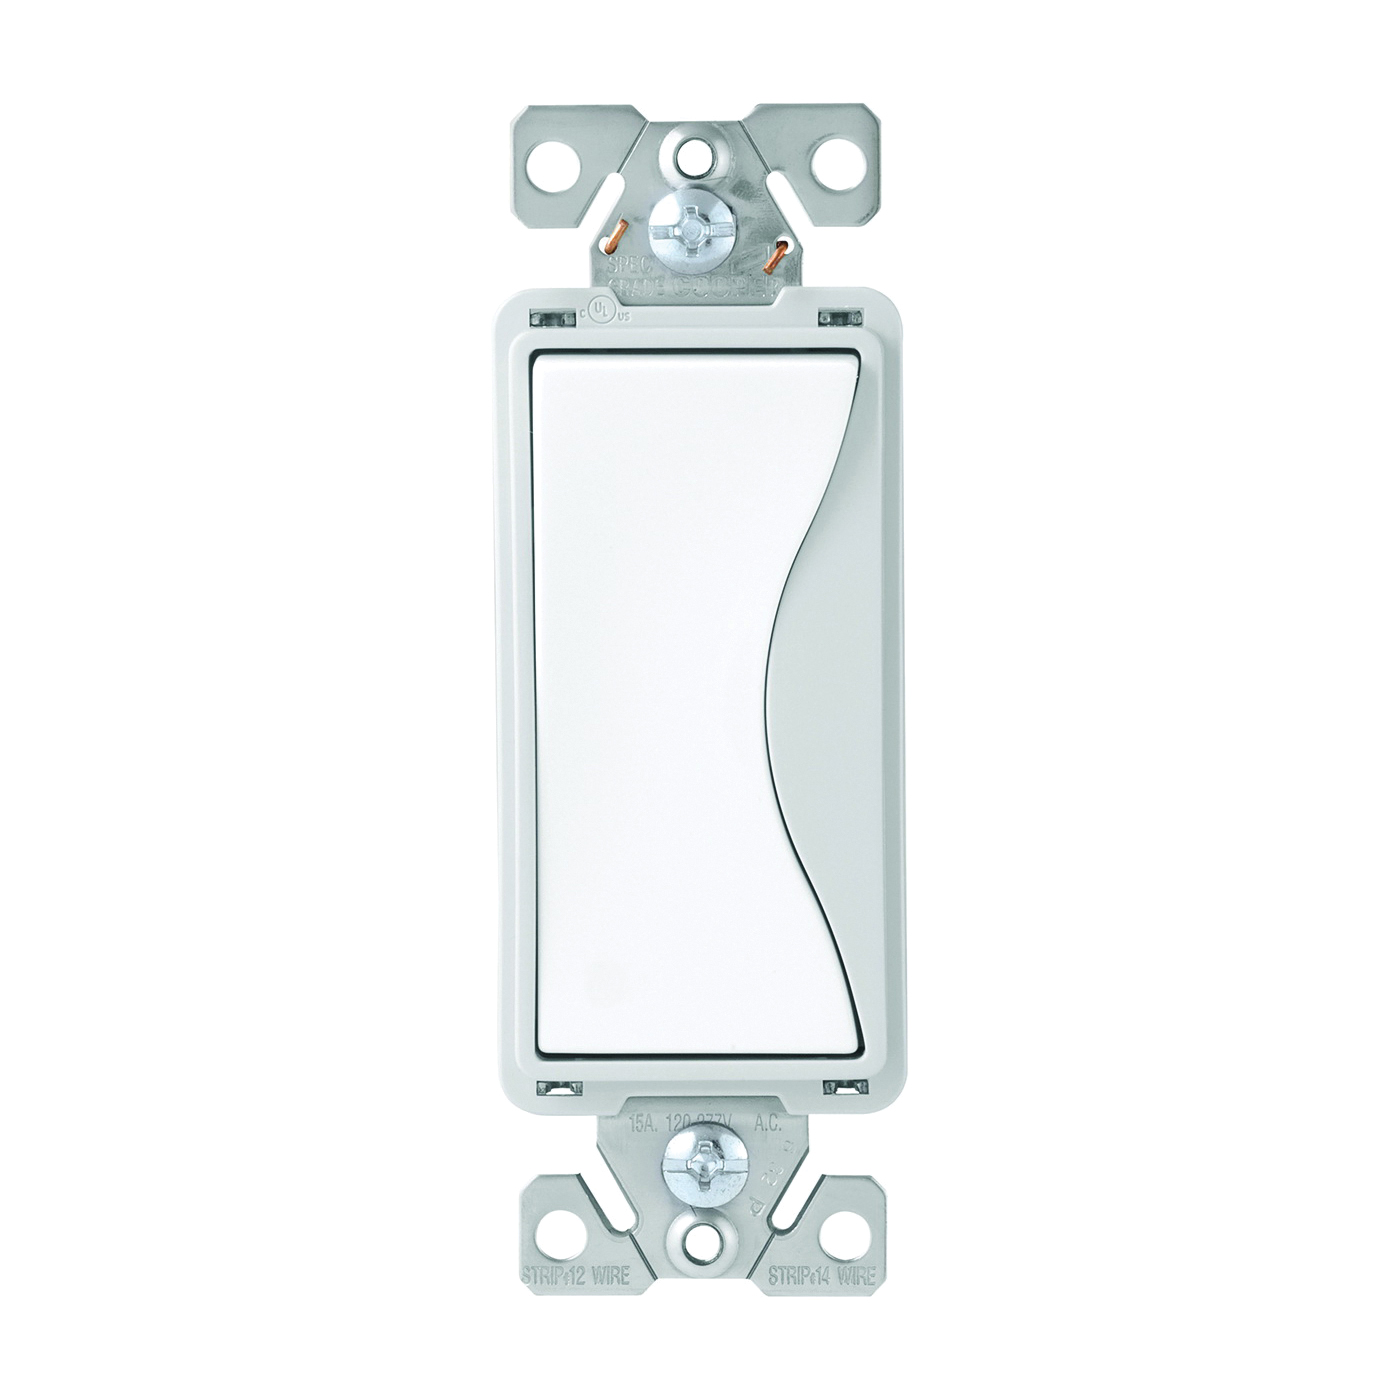 Picture of Eaton Wiring Devices ASPIRE 9504WS Rocker Switch, 15 A, 120/277 V, 4-Way, Push-In Terminal, White